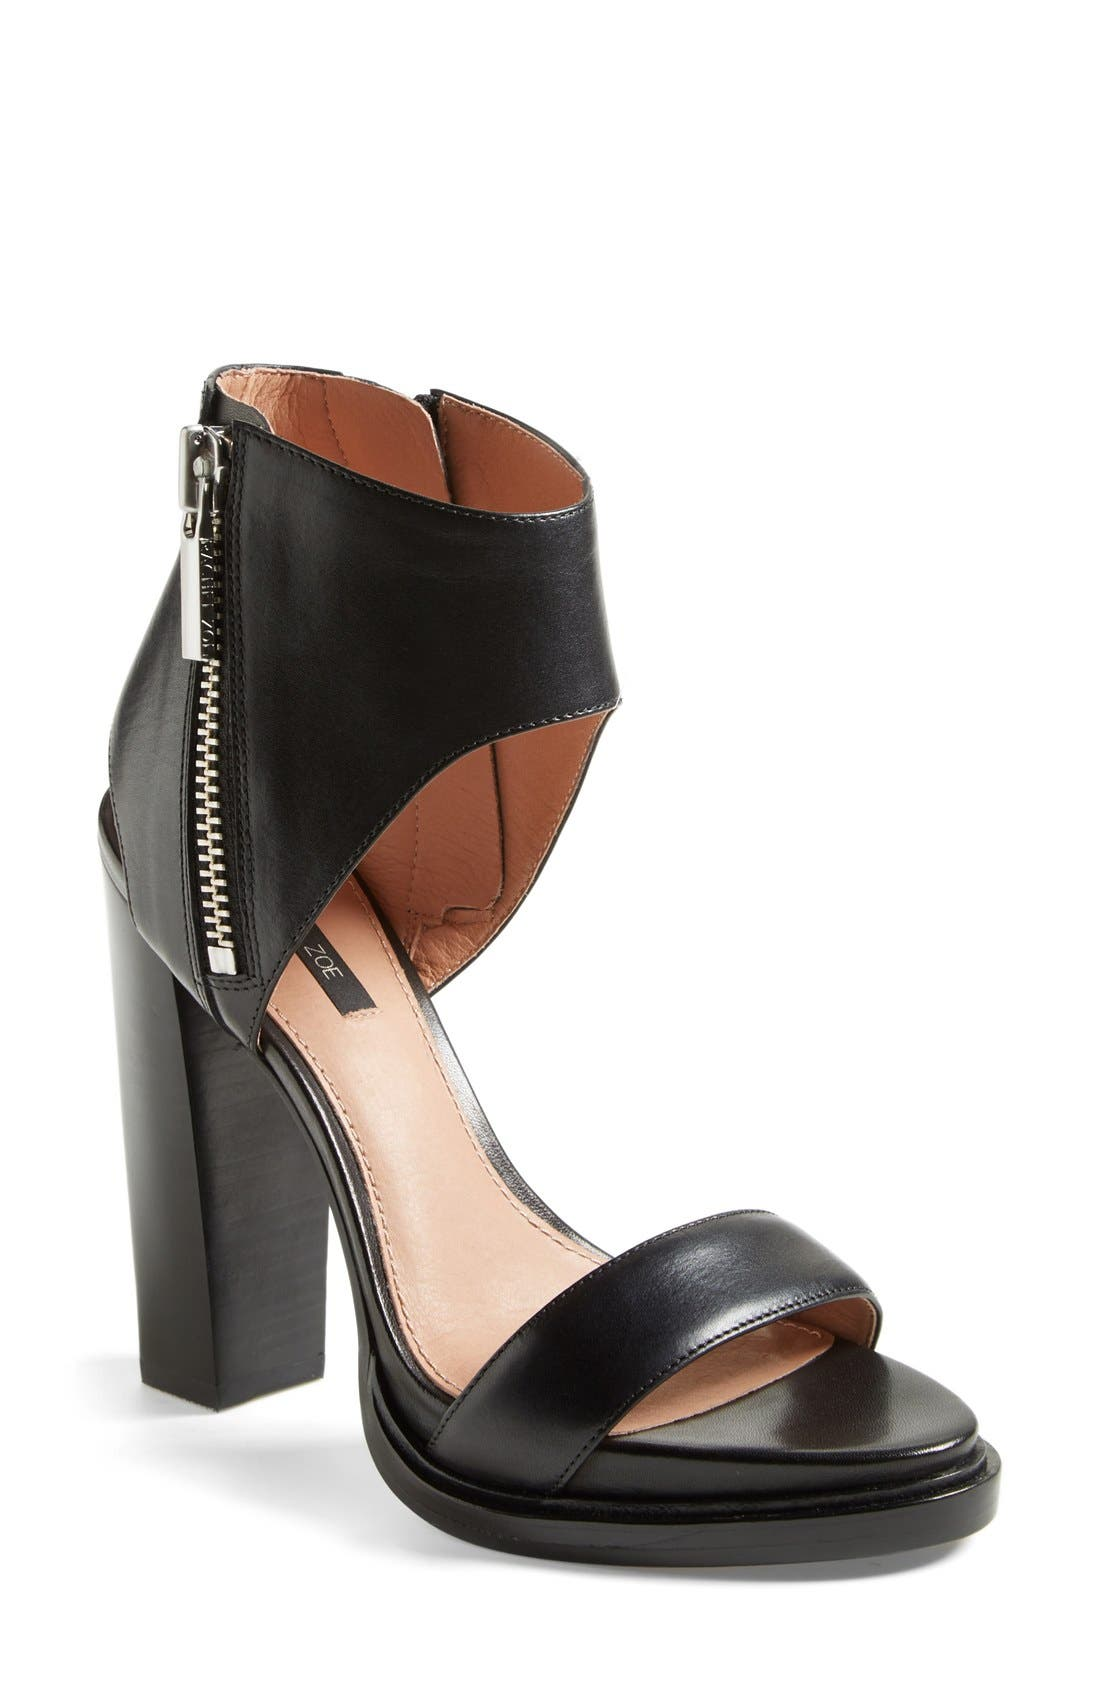 Alternate Image 1 Selected - Rachel Zoe 'Jamie' Sandal (Women)